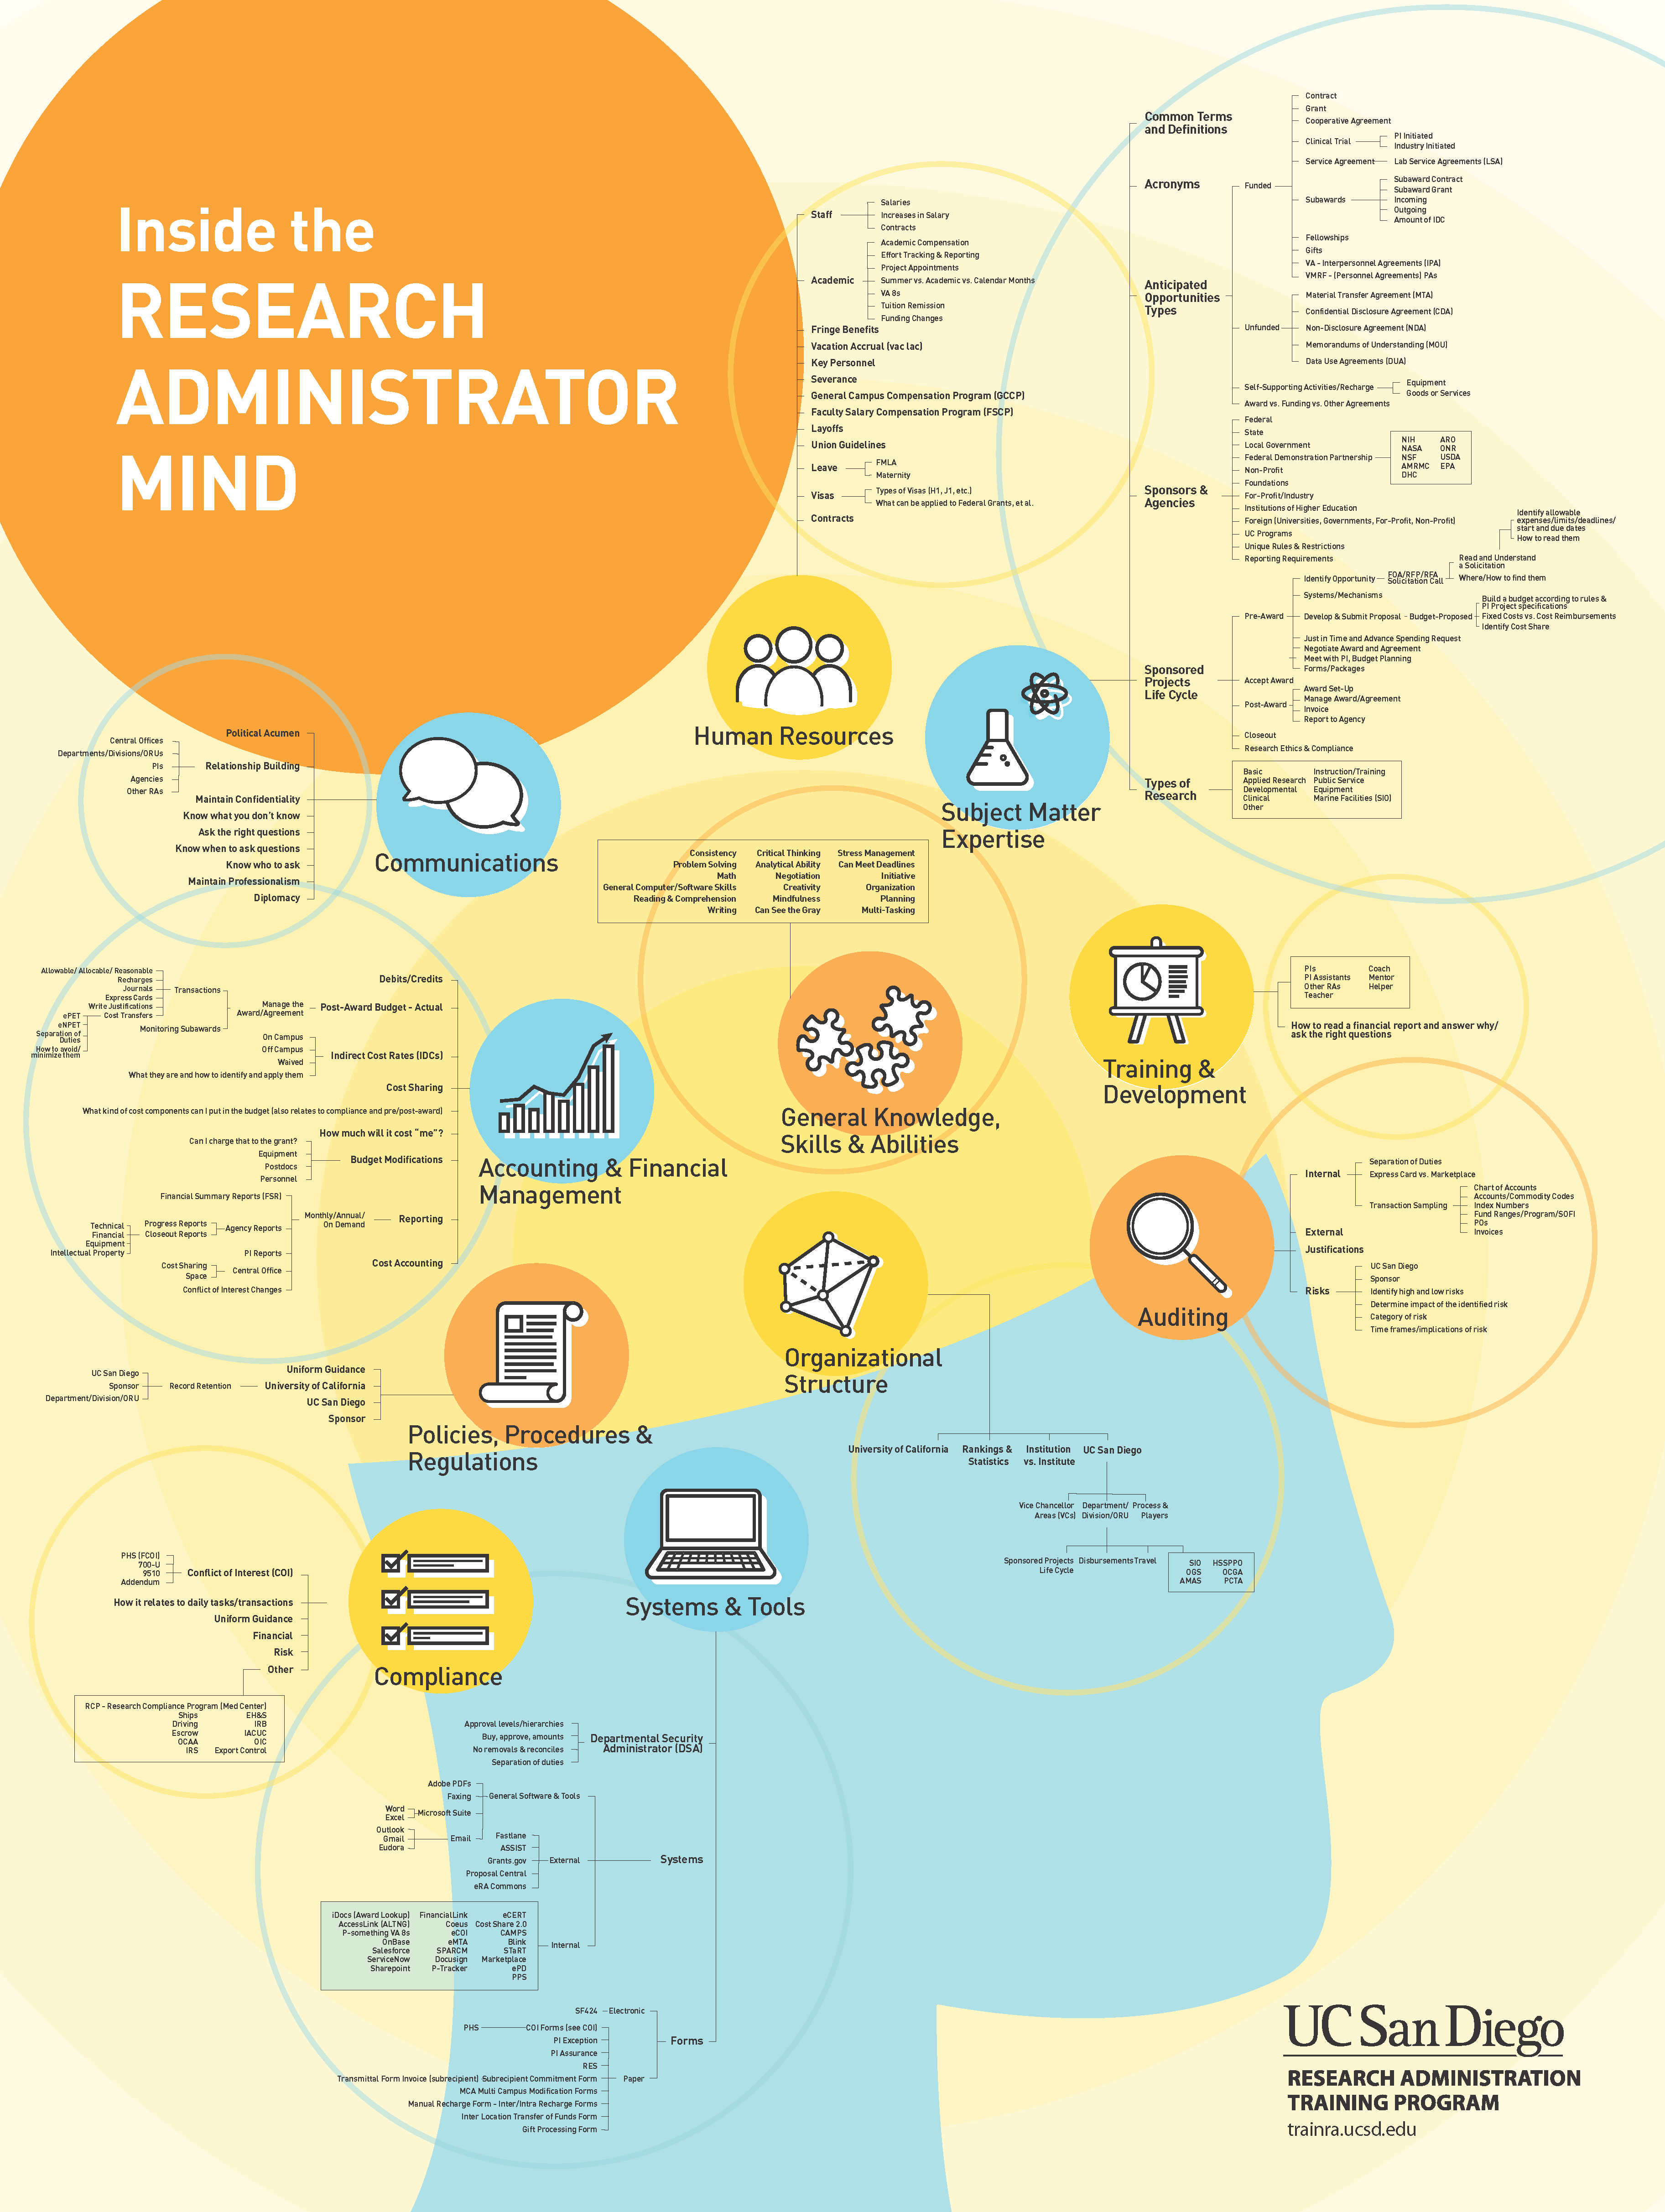 Inside the Research Administrator Mind